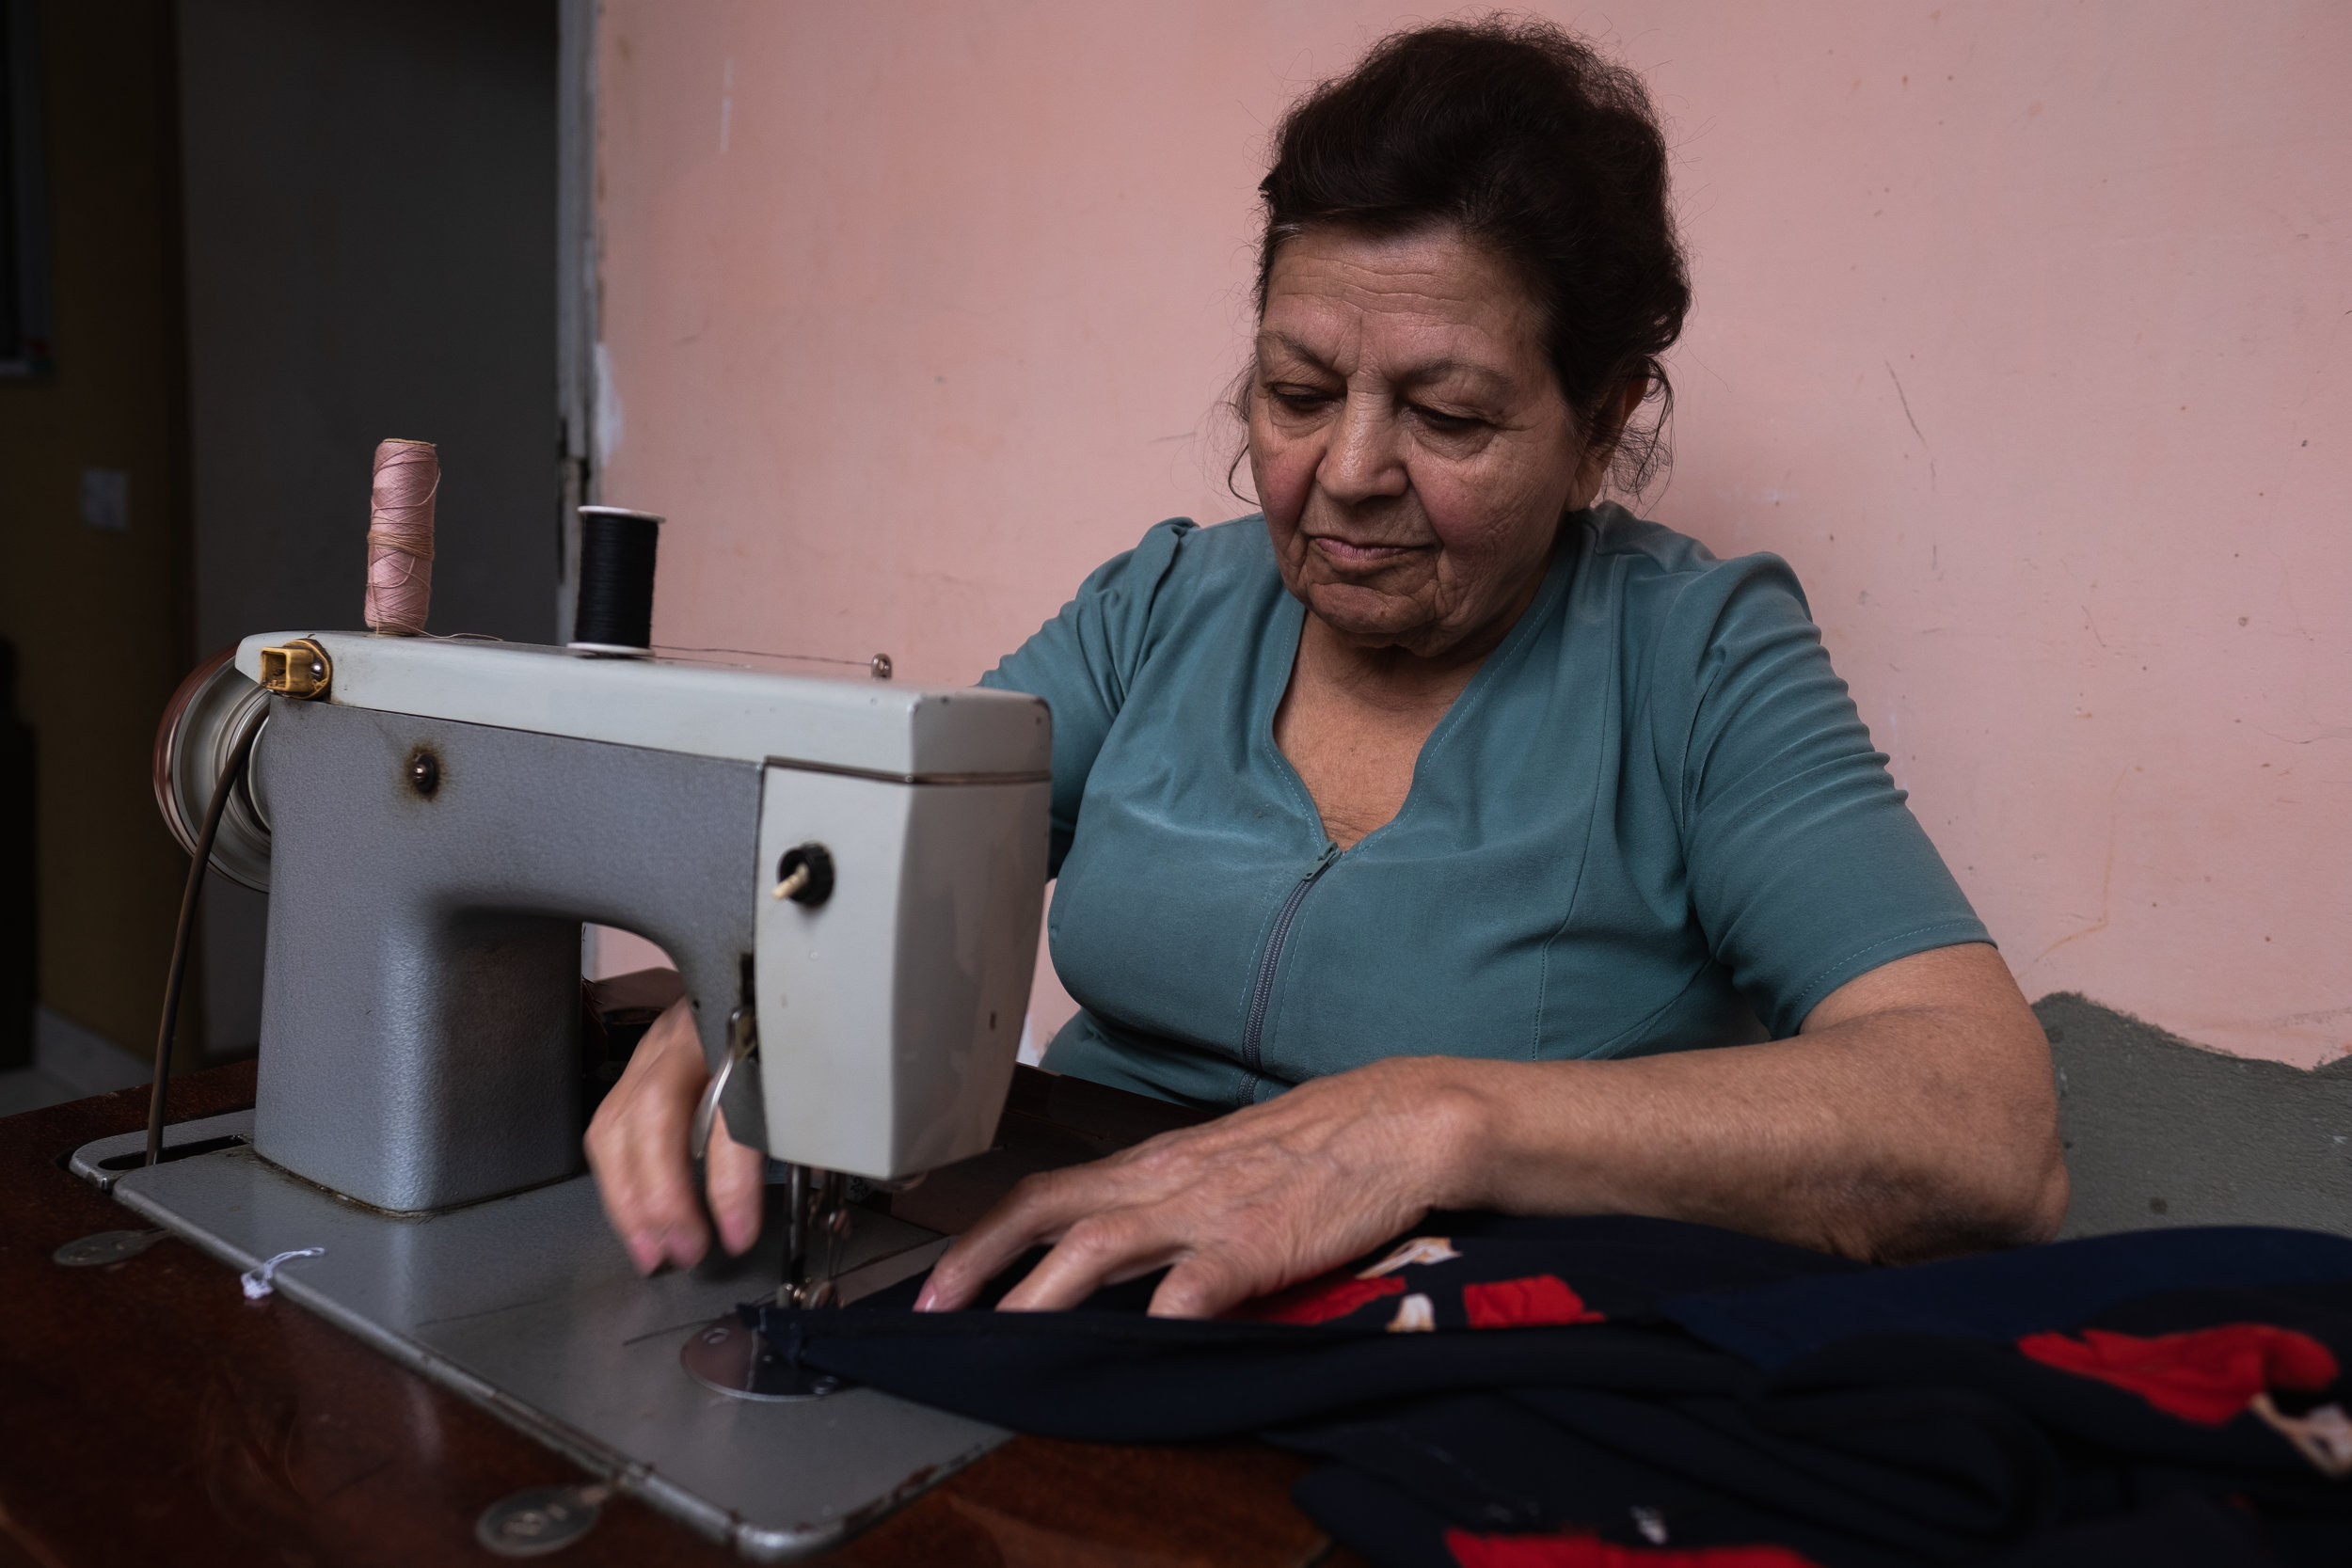 Sona has a passion for sewing and it still shows to this day. She is 80 years old, has 7 grandchildren and currently lives alone. Sona explained how she spent 4 years of her life as a seamstress in Uzbekistan where she used to make dresses for the women and pants for men, however her husband only wanted her to make dresses for the woman she said while beginning to laugh. She has a good heart, kind soul and loves to talk people.